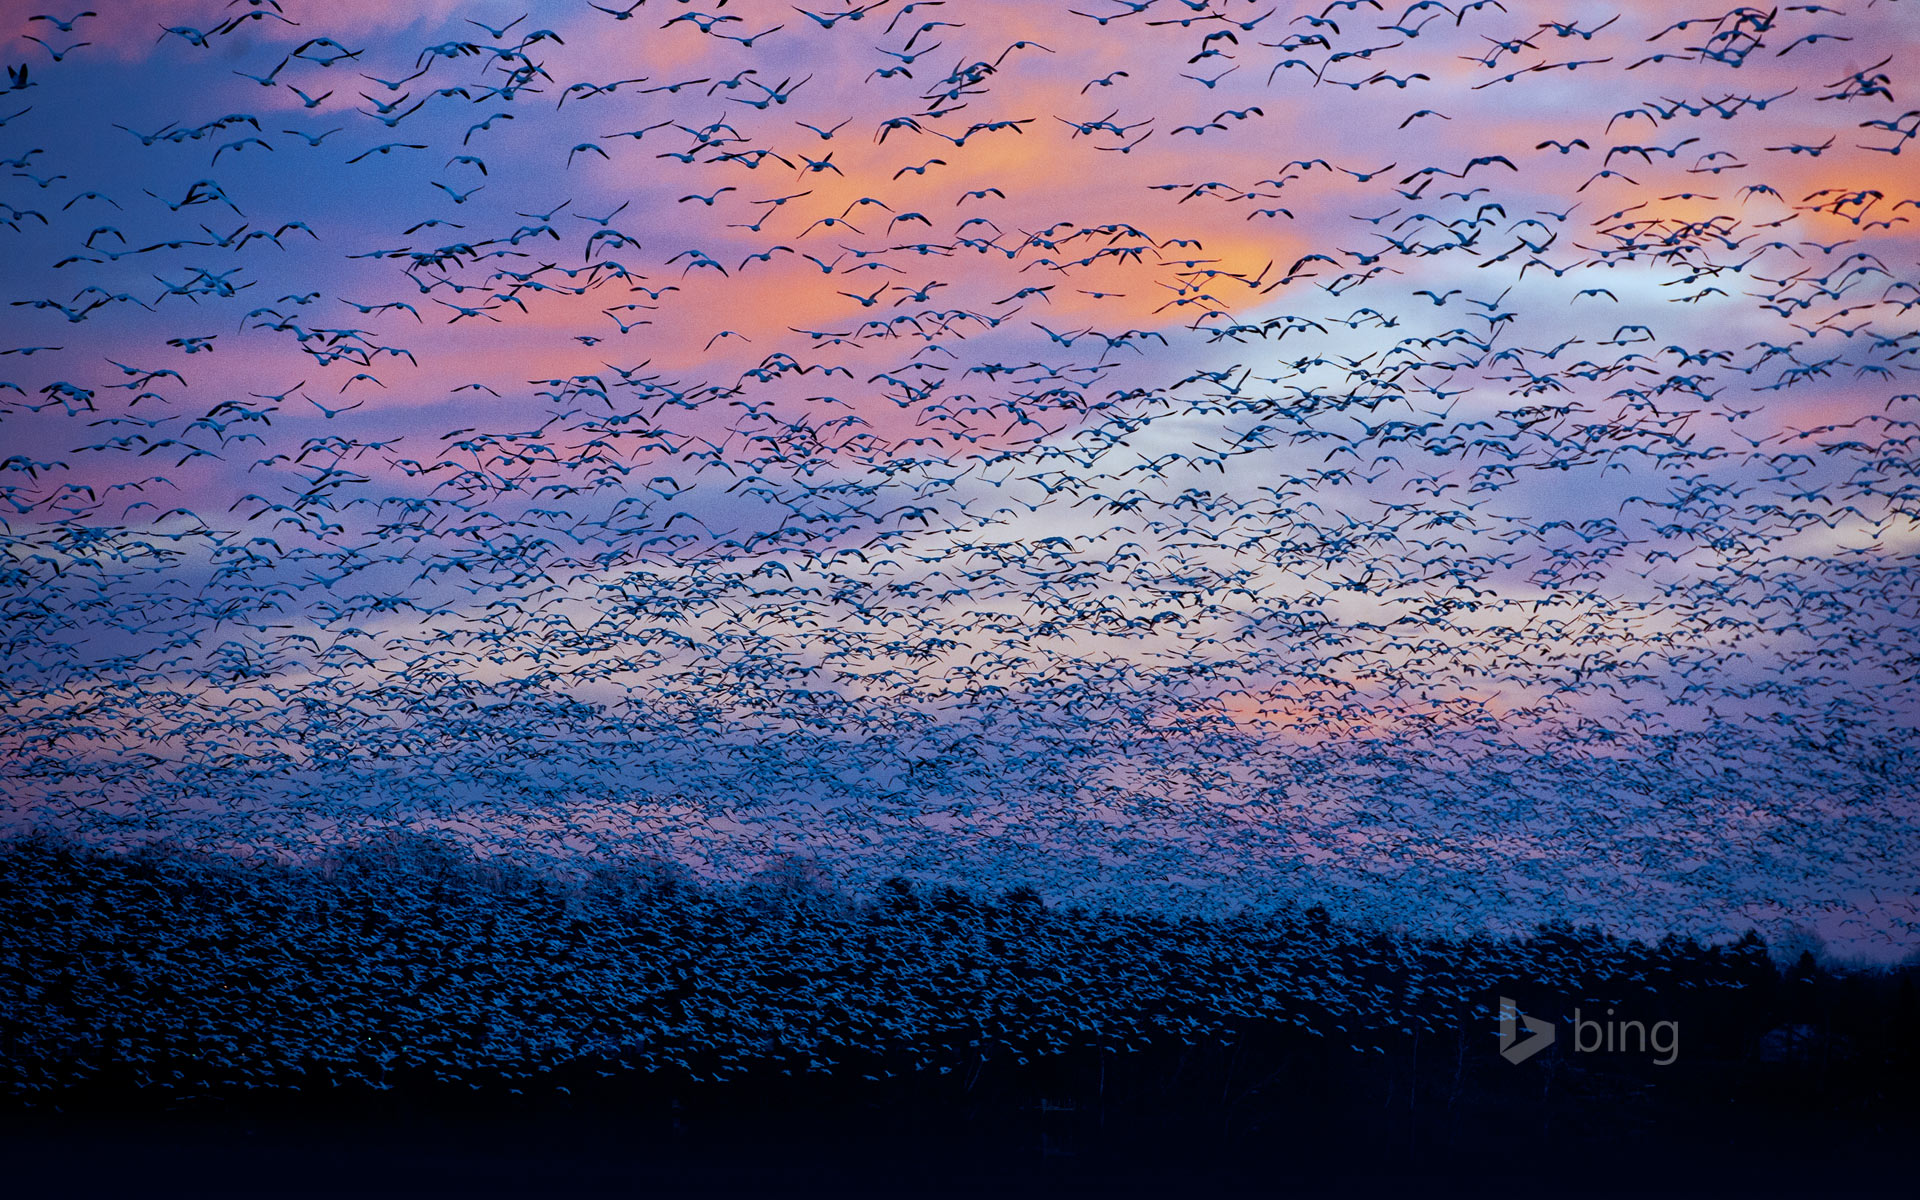 Snow goose migration at the Saint-François River, Quebec, Canada